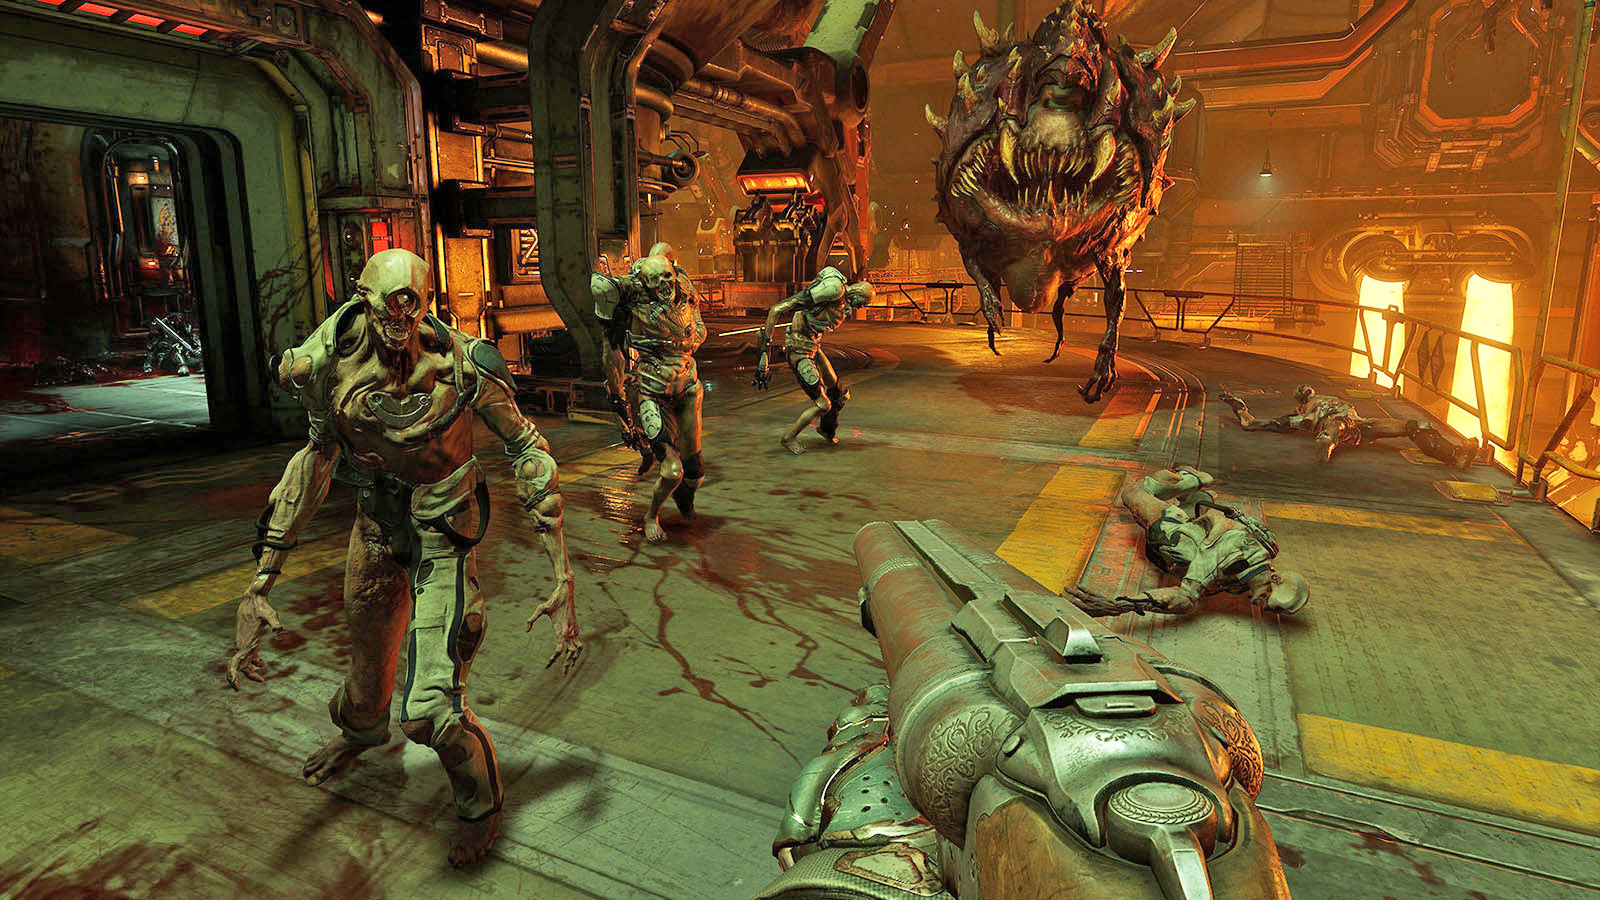 'Fallout,' 'Doom' and 'Skyrim' will launch in VR this year